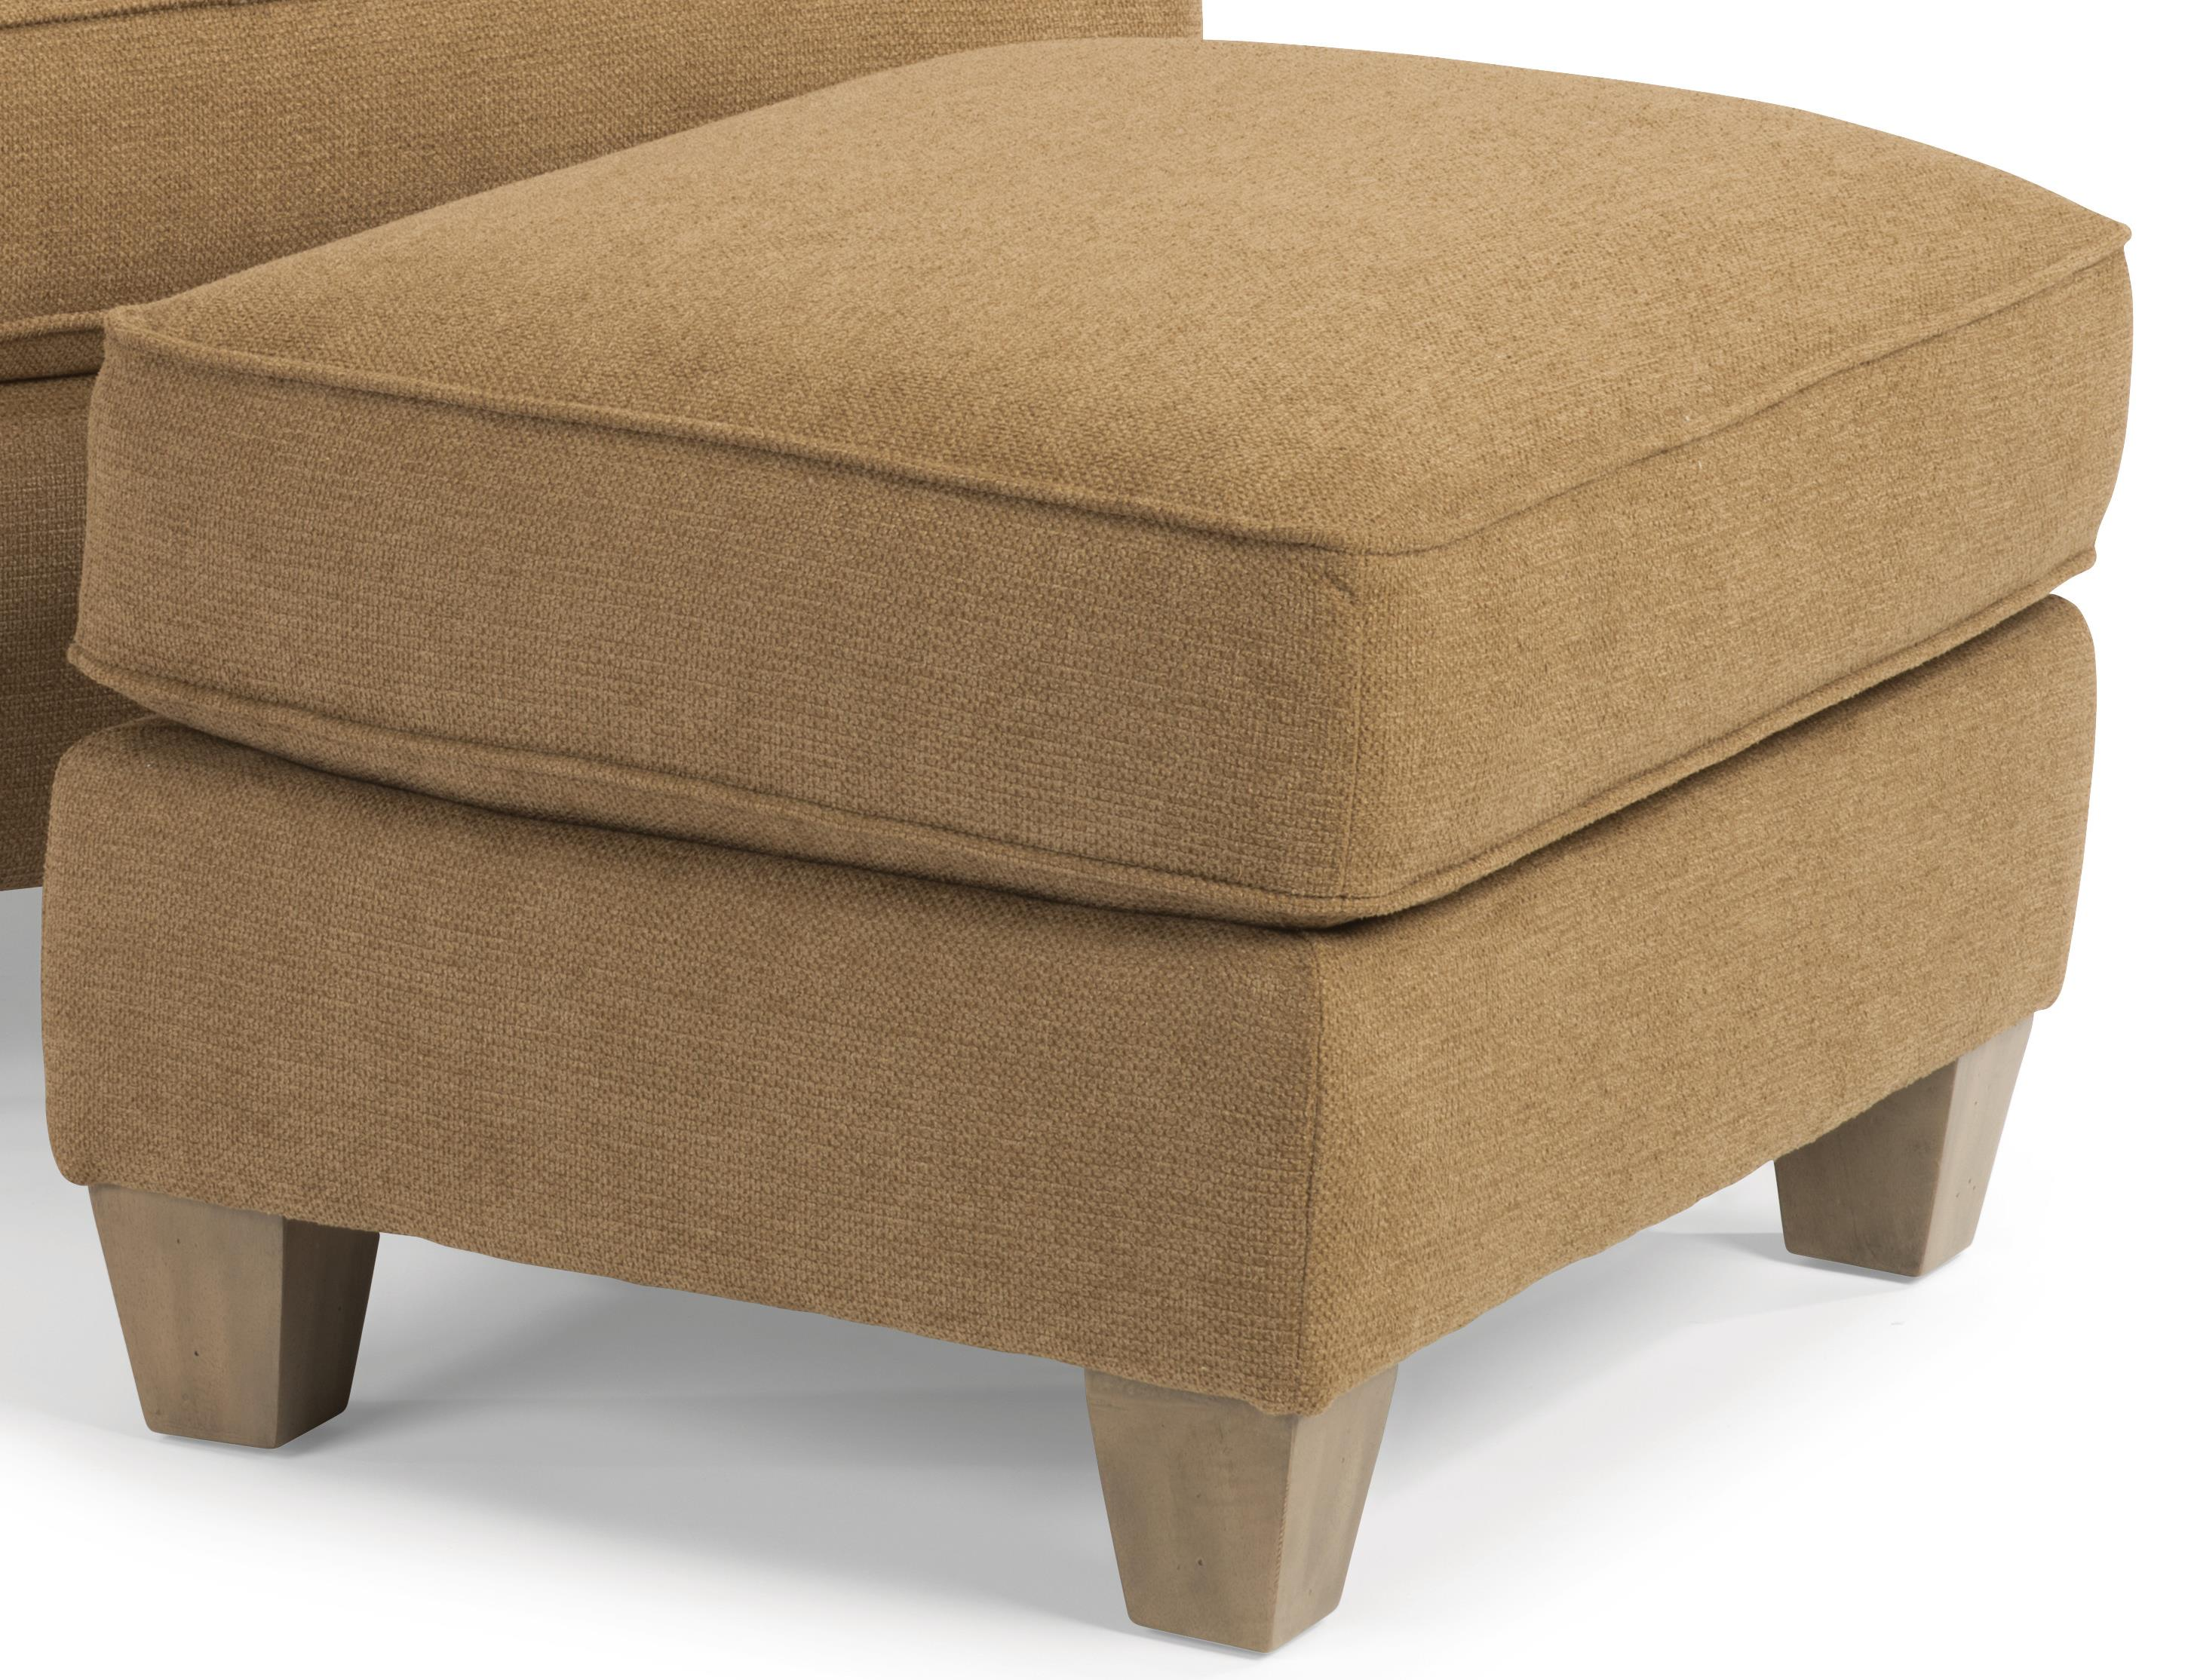 Atlantis Ottoman by Flexsteel at Furniture and ApplianceMart